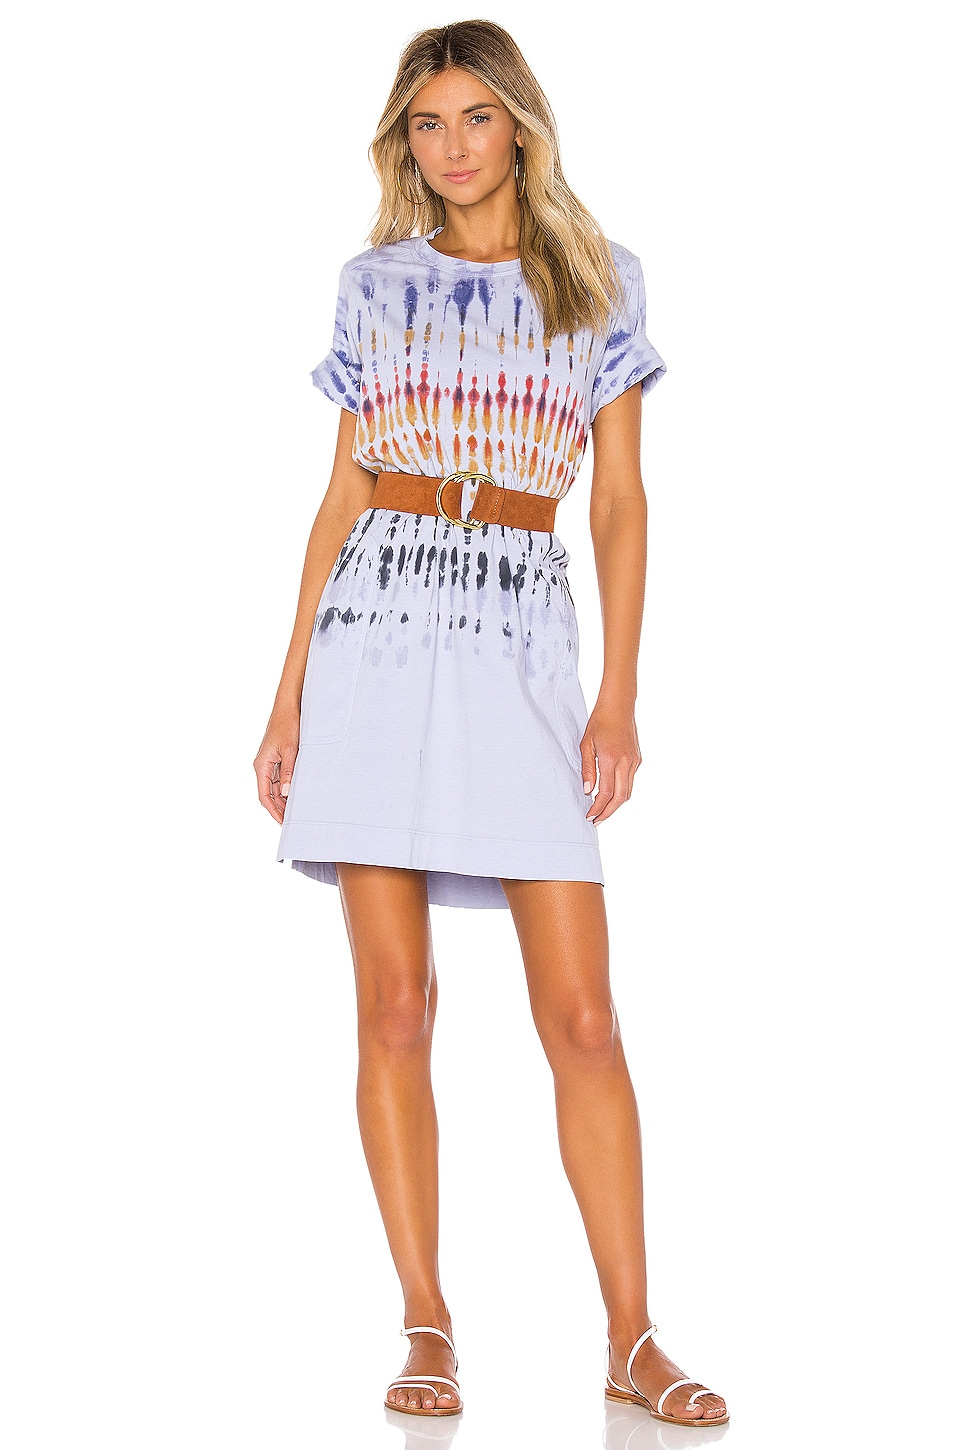 Raquel Allegra x REVOLVE T Shirt Dress in Rainbow Tie Dye